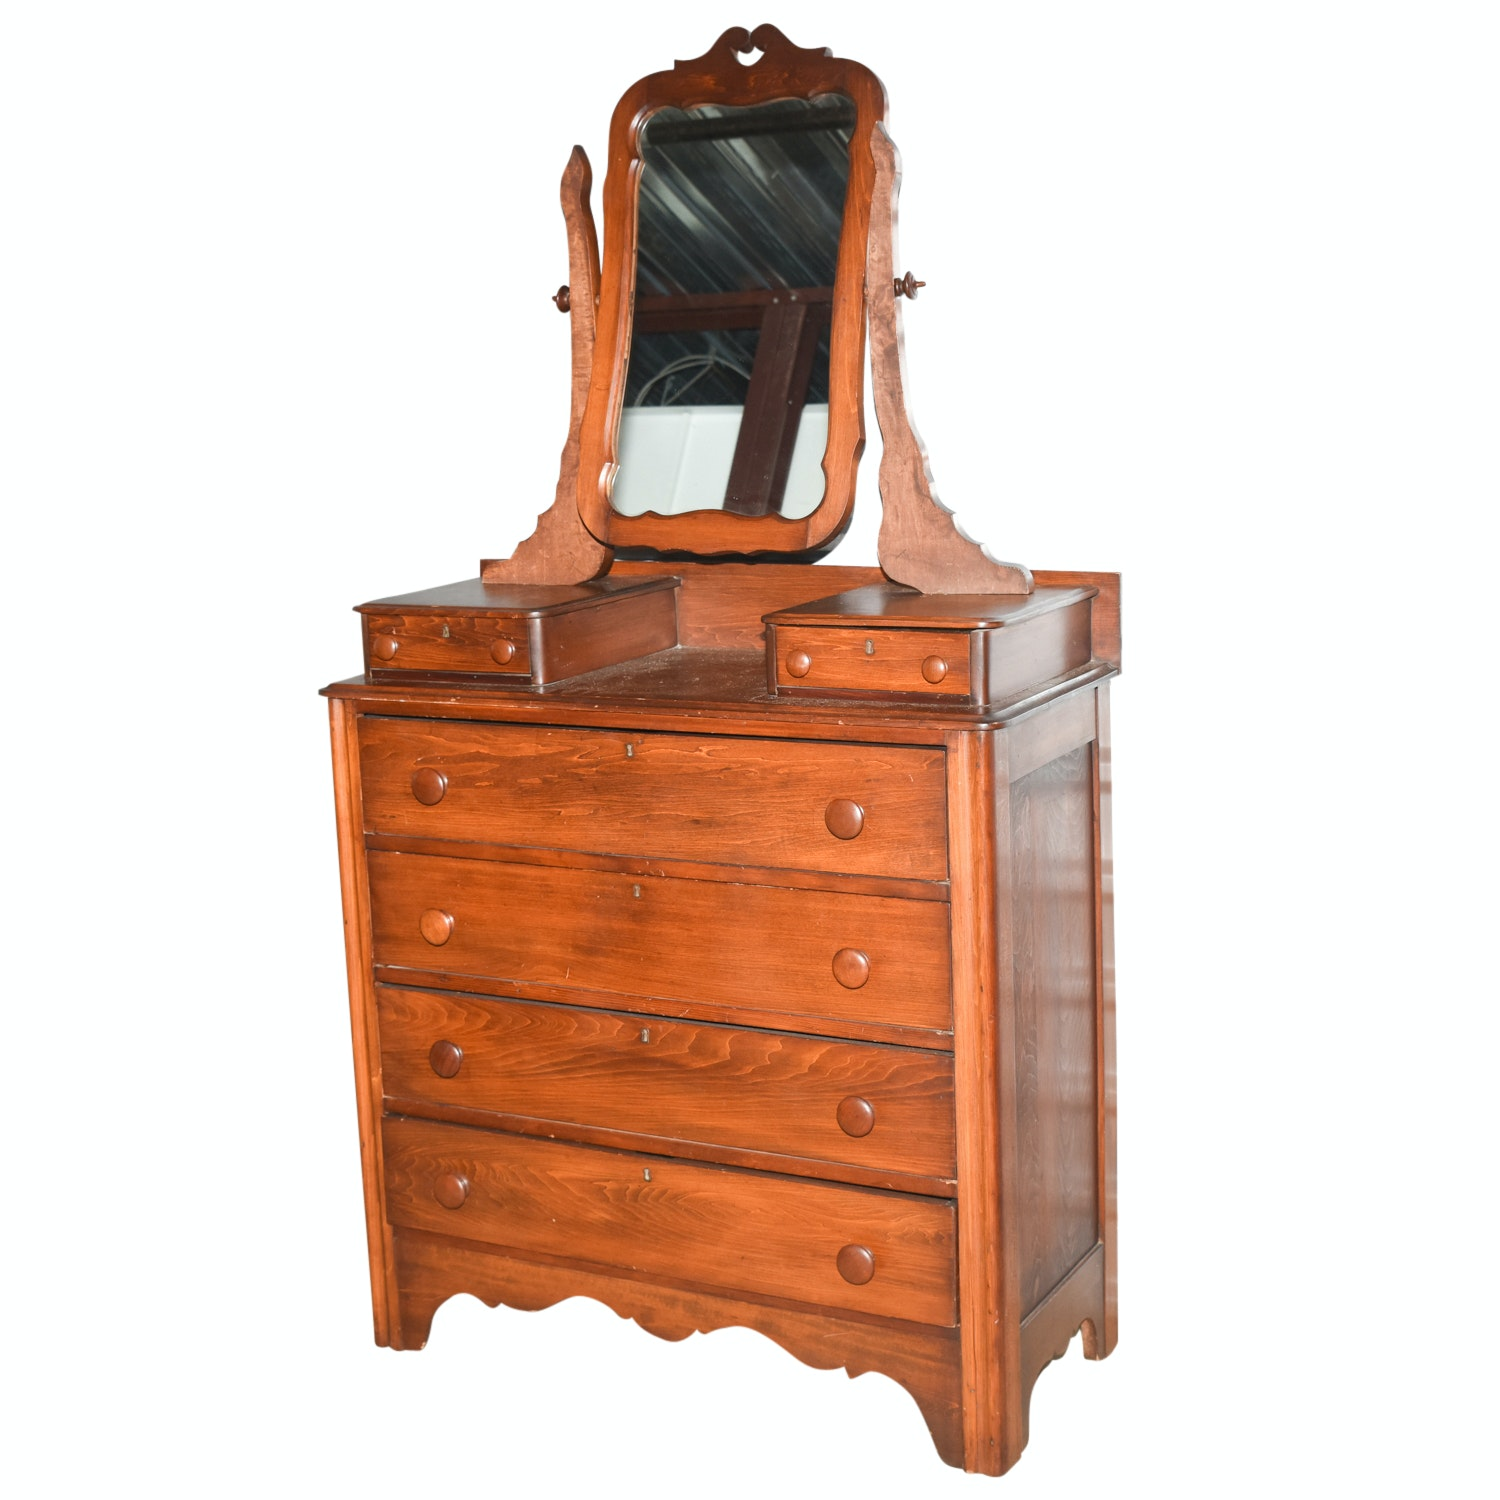 Antique Early Victorian Pine Chest of Drawers with Mirror